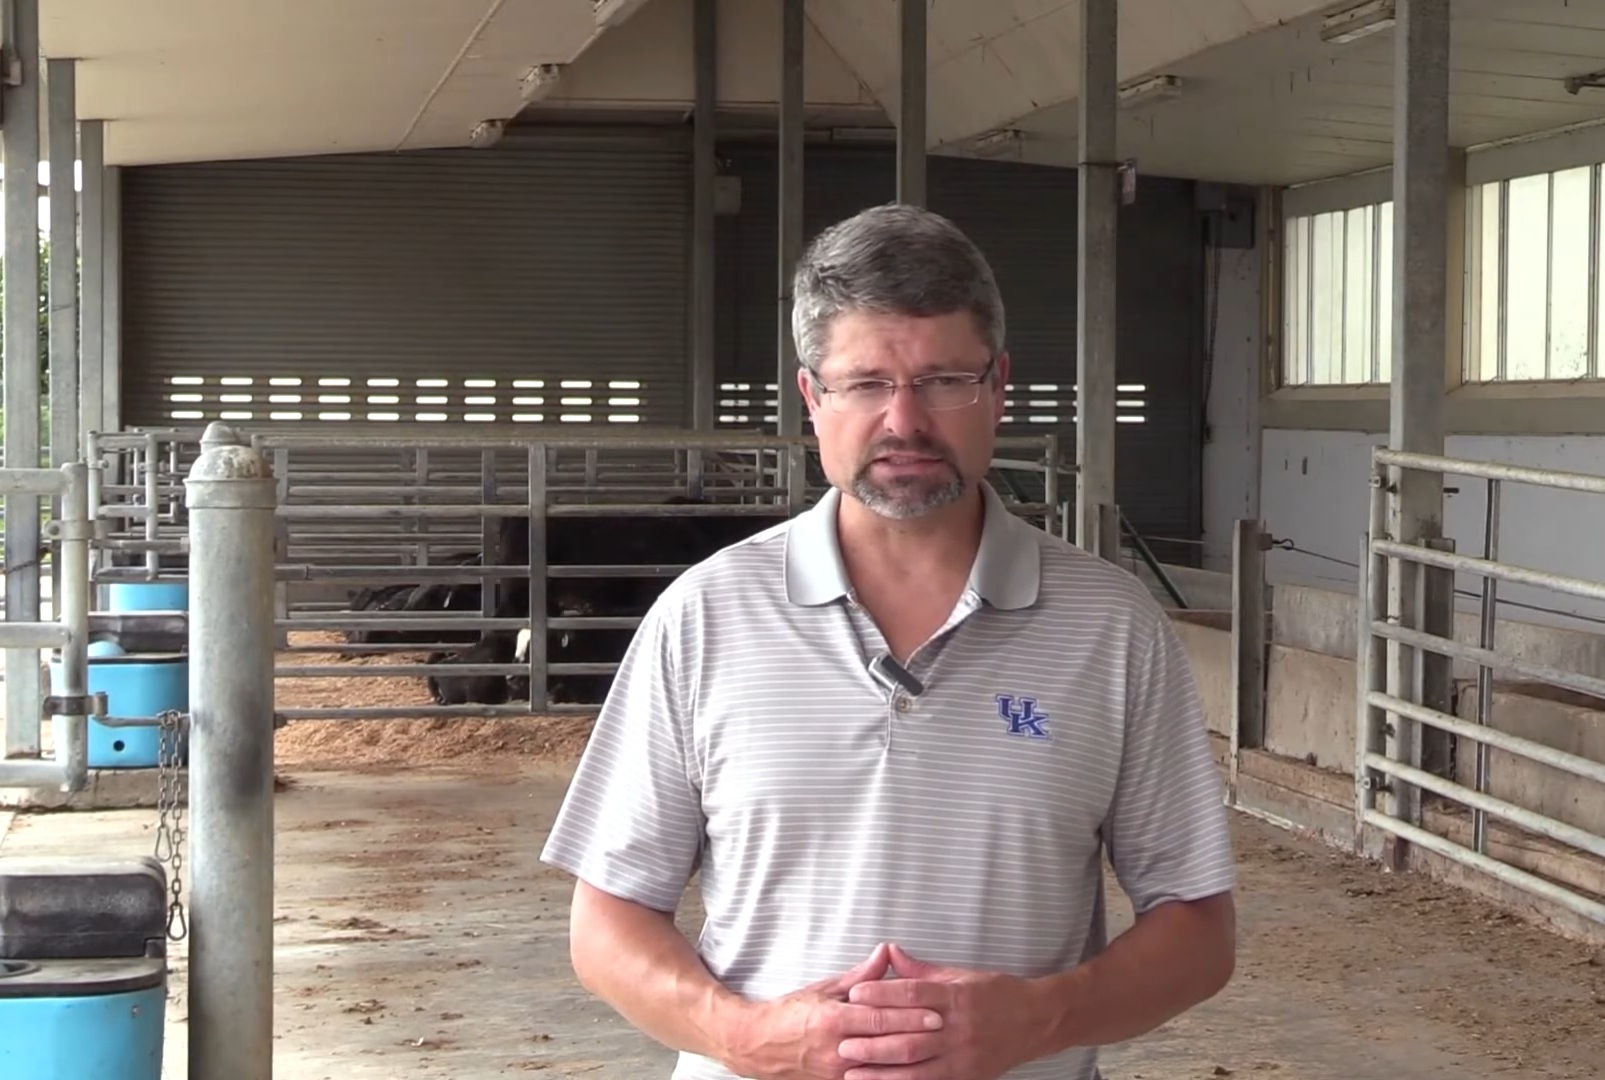 UK offers numerous online beef education opportunities for Kentucky cattle producers